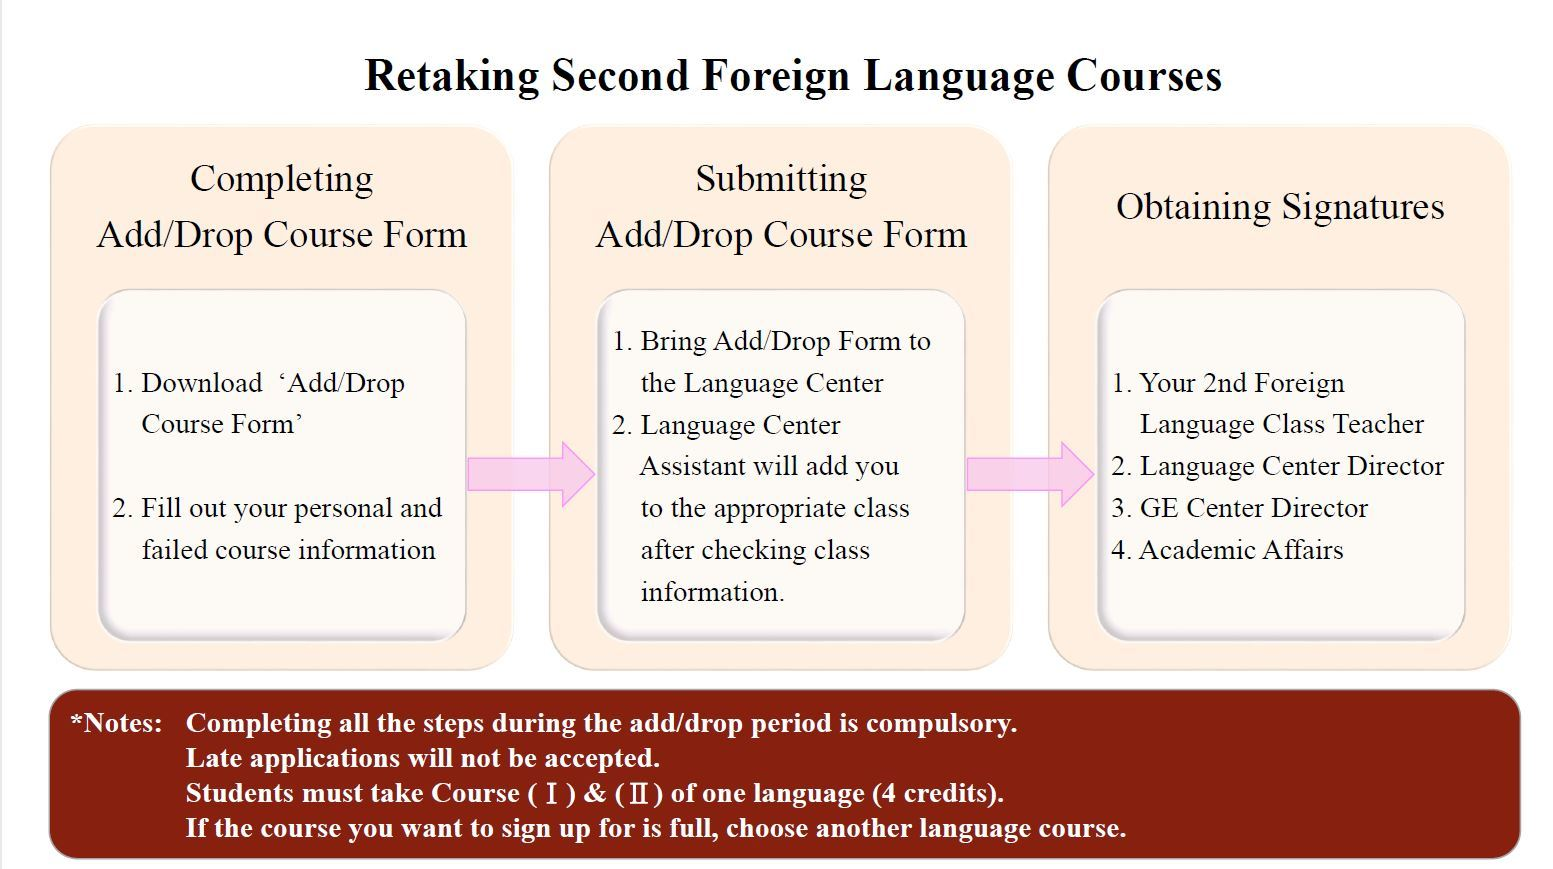 03_Retaking Second Foreign Language Courses_1080806